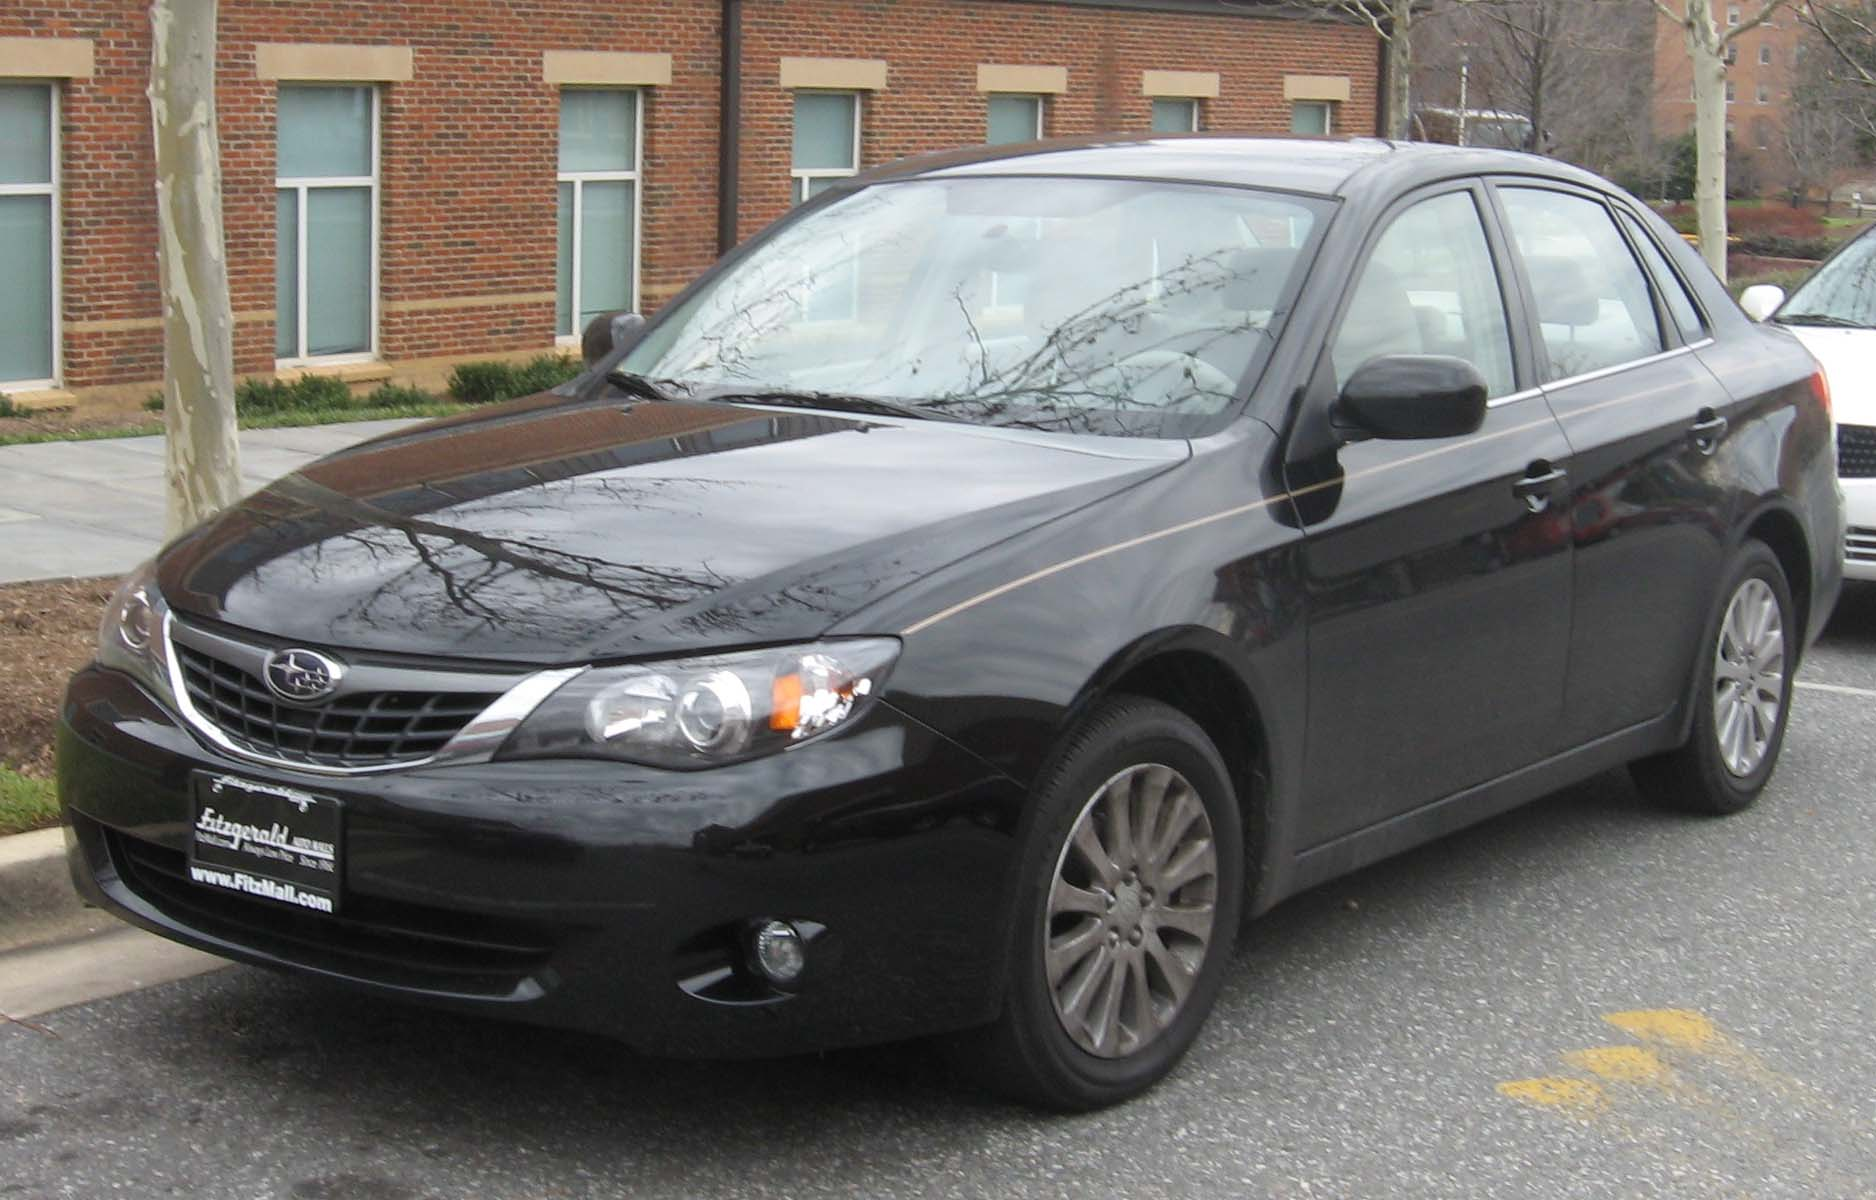 file 2008 subaru impreza sedan wikipedia. Black Bedroom Furniture Sets. Home Design Ideas